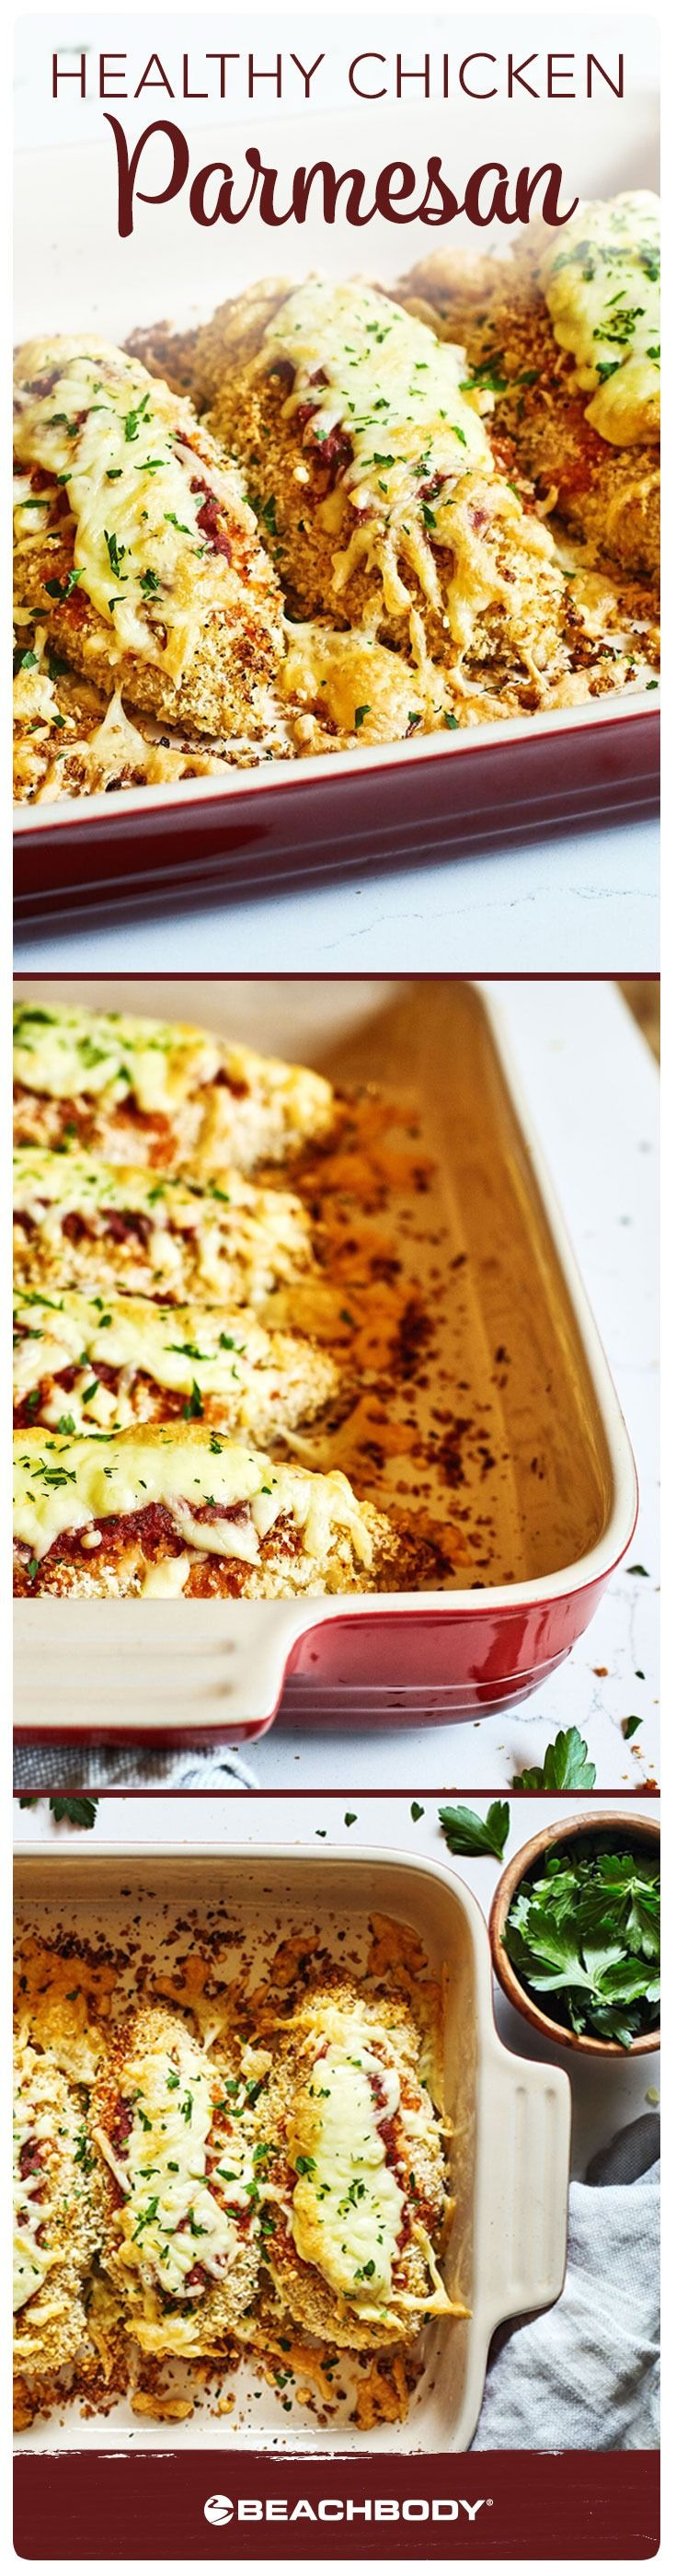 """Chicken Parmesan also usually falls on the """"unhealthy"""" list. To replicate the crispy fried coating, we dipped lean chicken breasts in spiced breadcrumbs and baked them. // healthy // recipe // dinner // chicken parm // chicken recipe // Beachbody // BeachbodyBlog.com"""